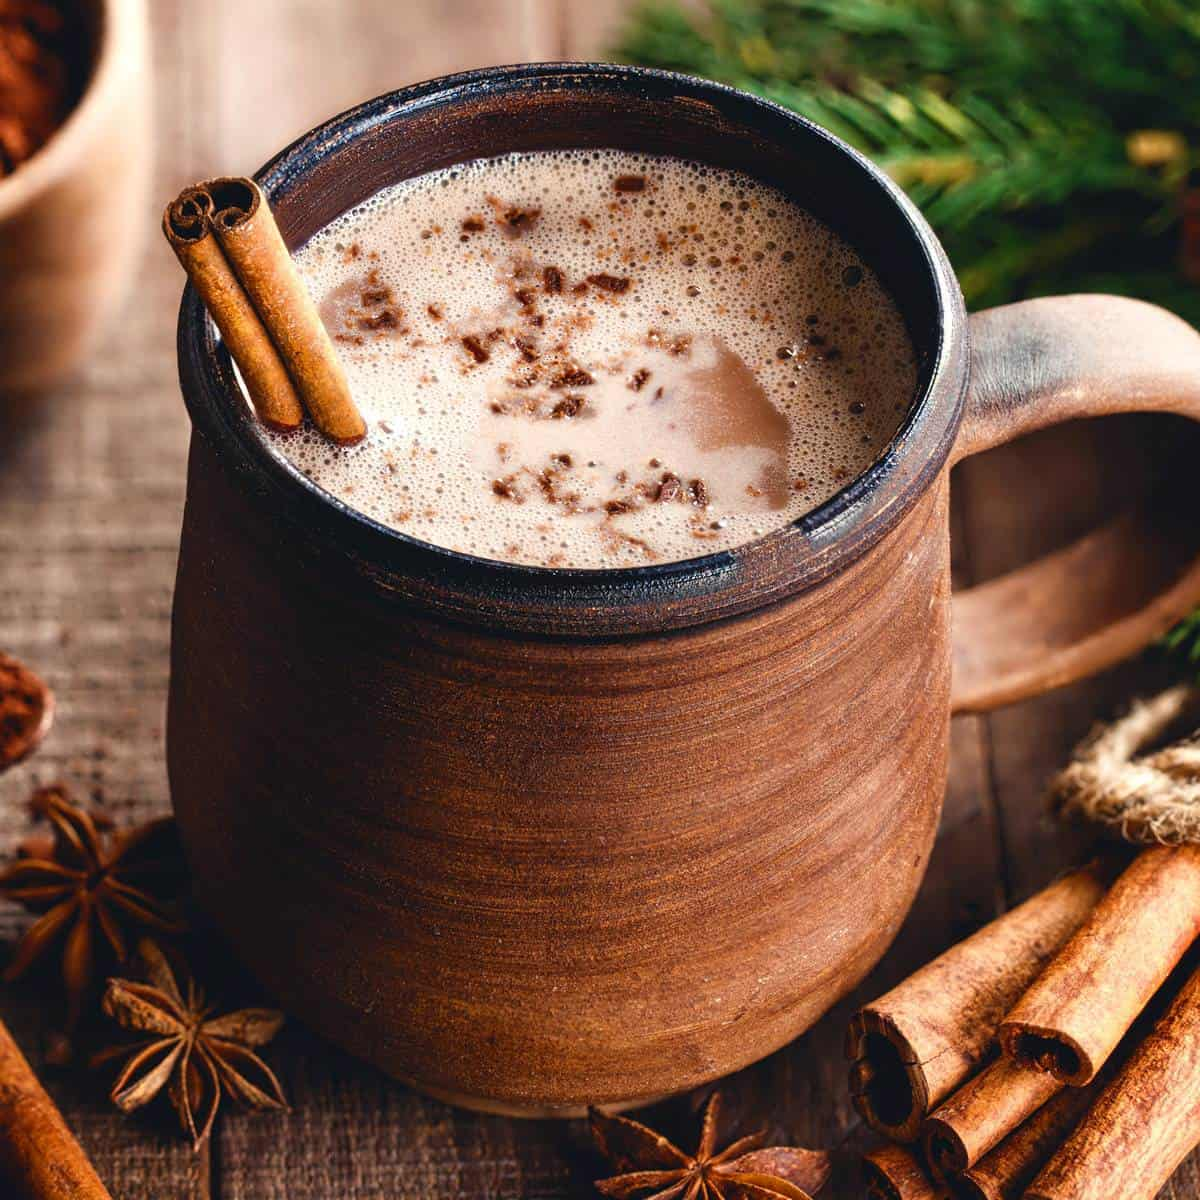 colonial hot chocolate recipe 18th century vintage old fashioned cinnamon cardamom star anise